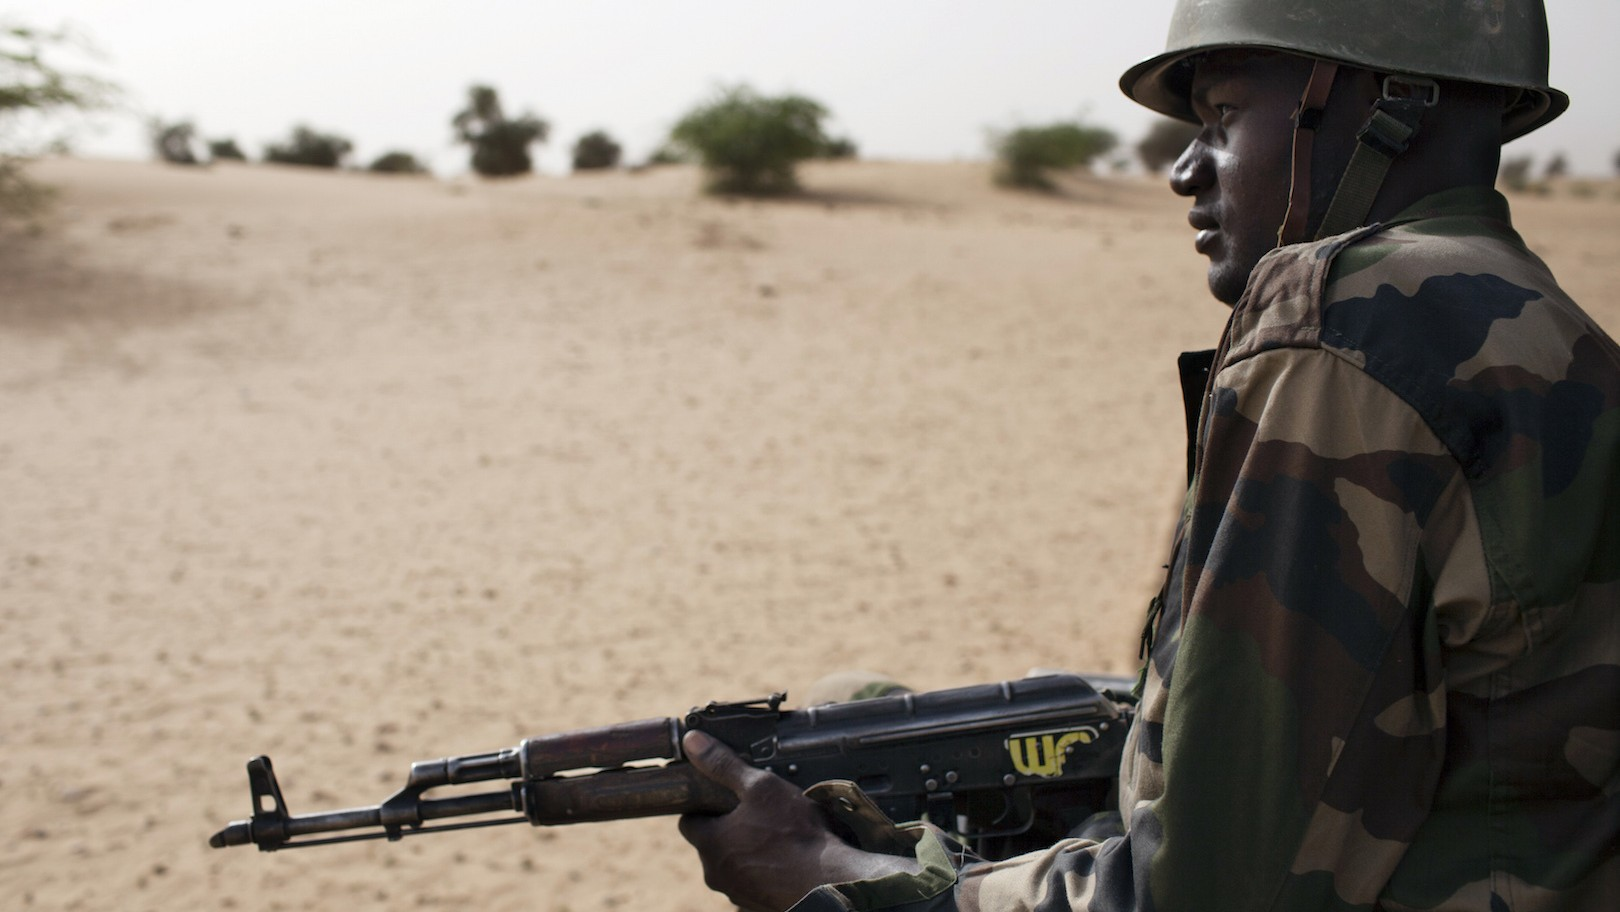 Islamist Militants in West Africa Plan to Attack Ghana and Togo Next, Says Government